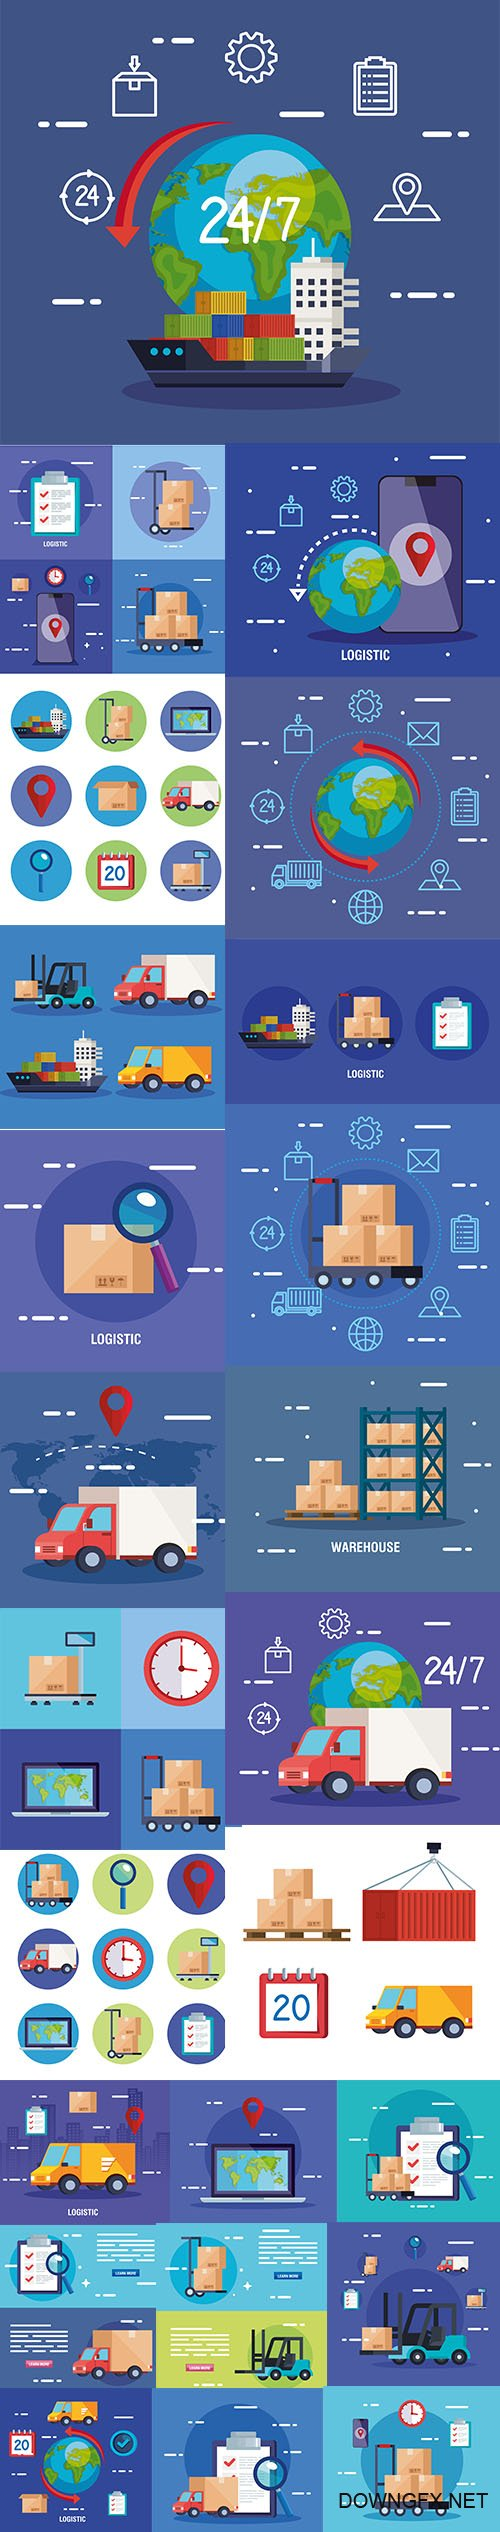 Delivery Logistic Service Illustration Set